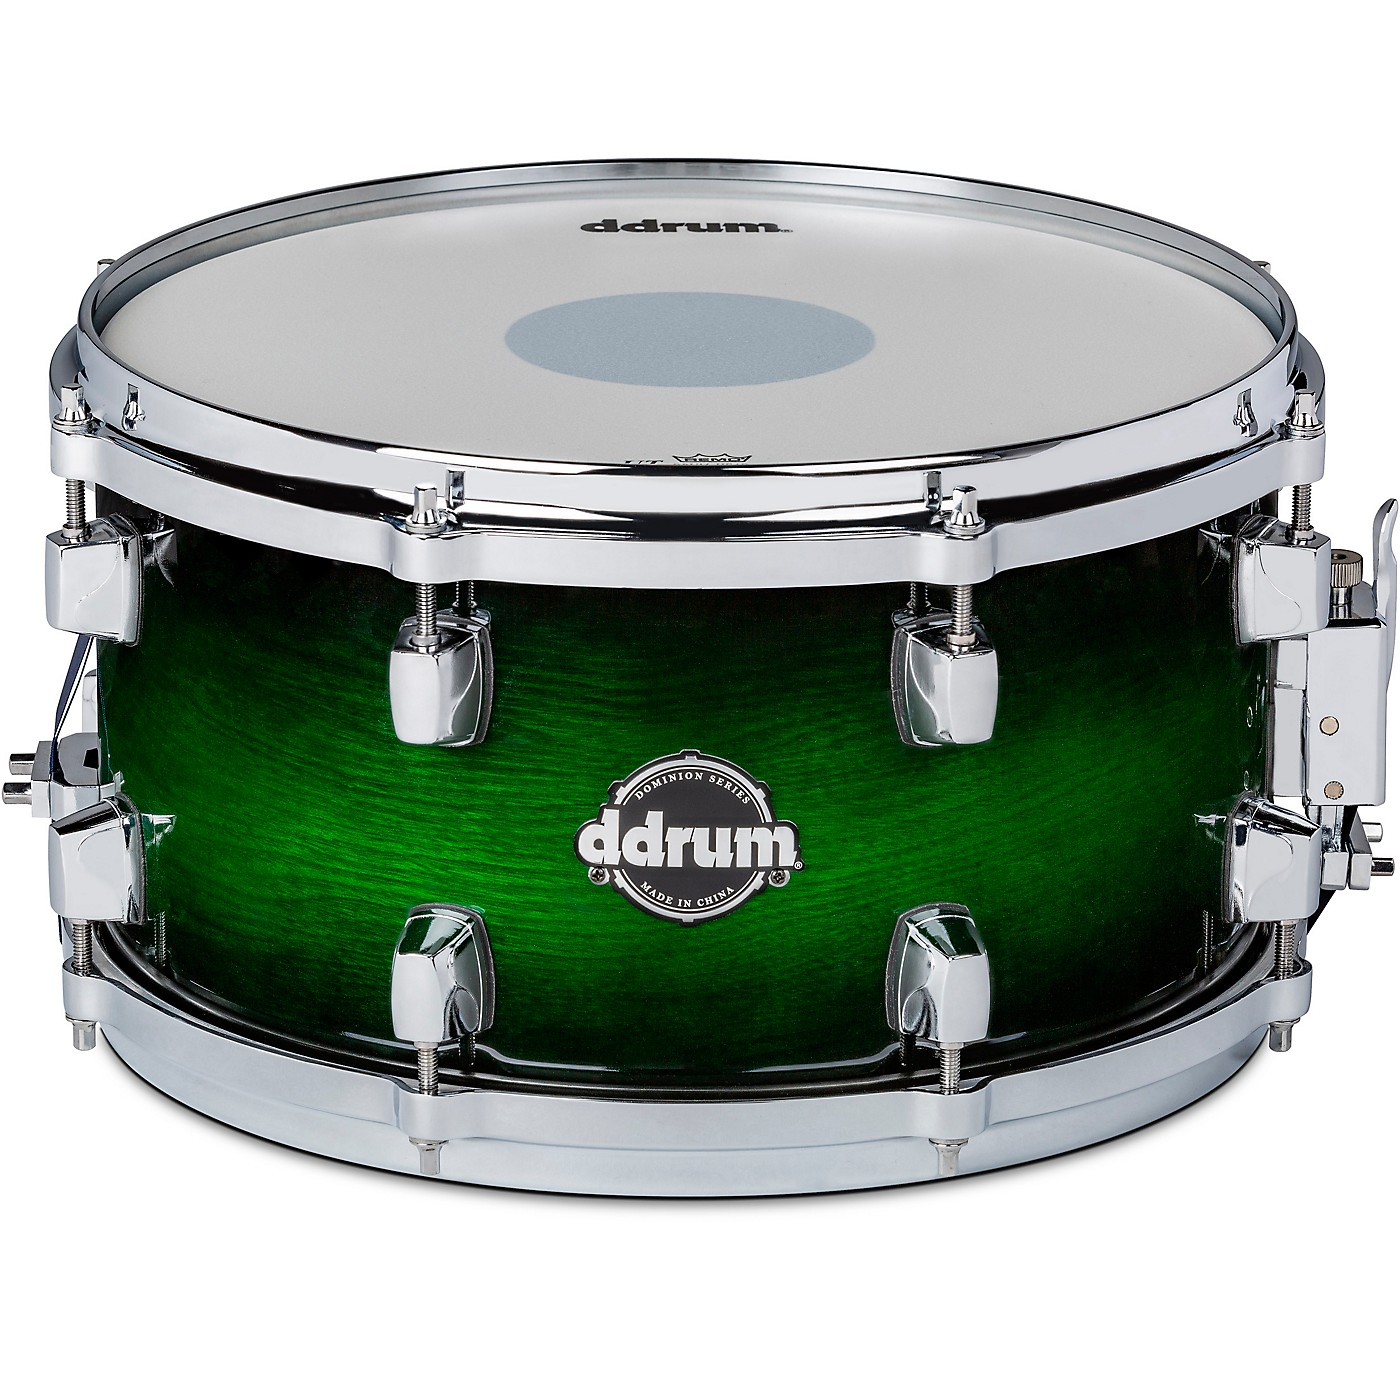 ddrum Dominion Birch Snare Drum with Ash Veneer thumbnail